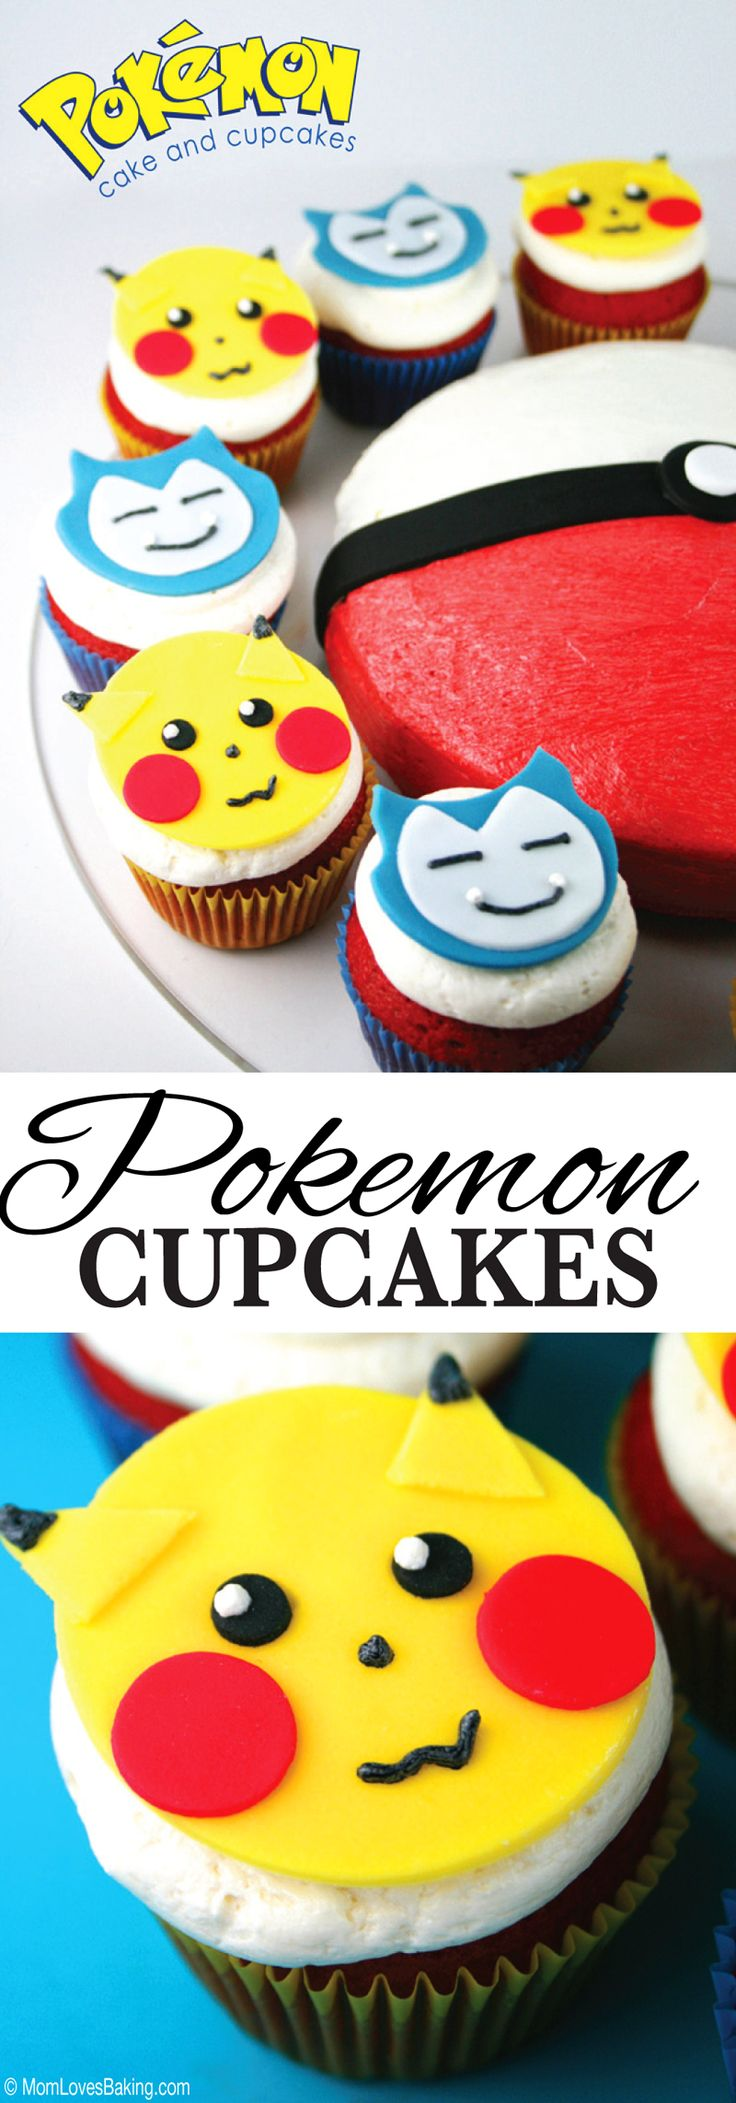 17 Best Ideas About Pokeball Cake On Pinterest Pokemon